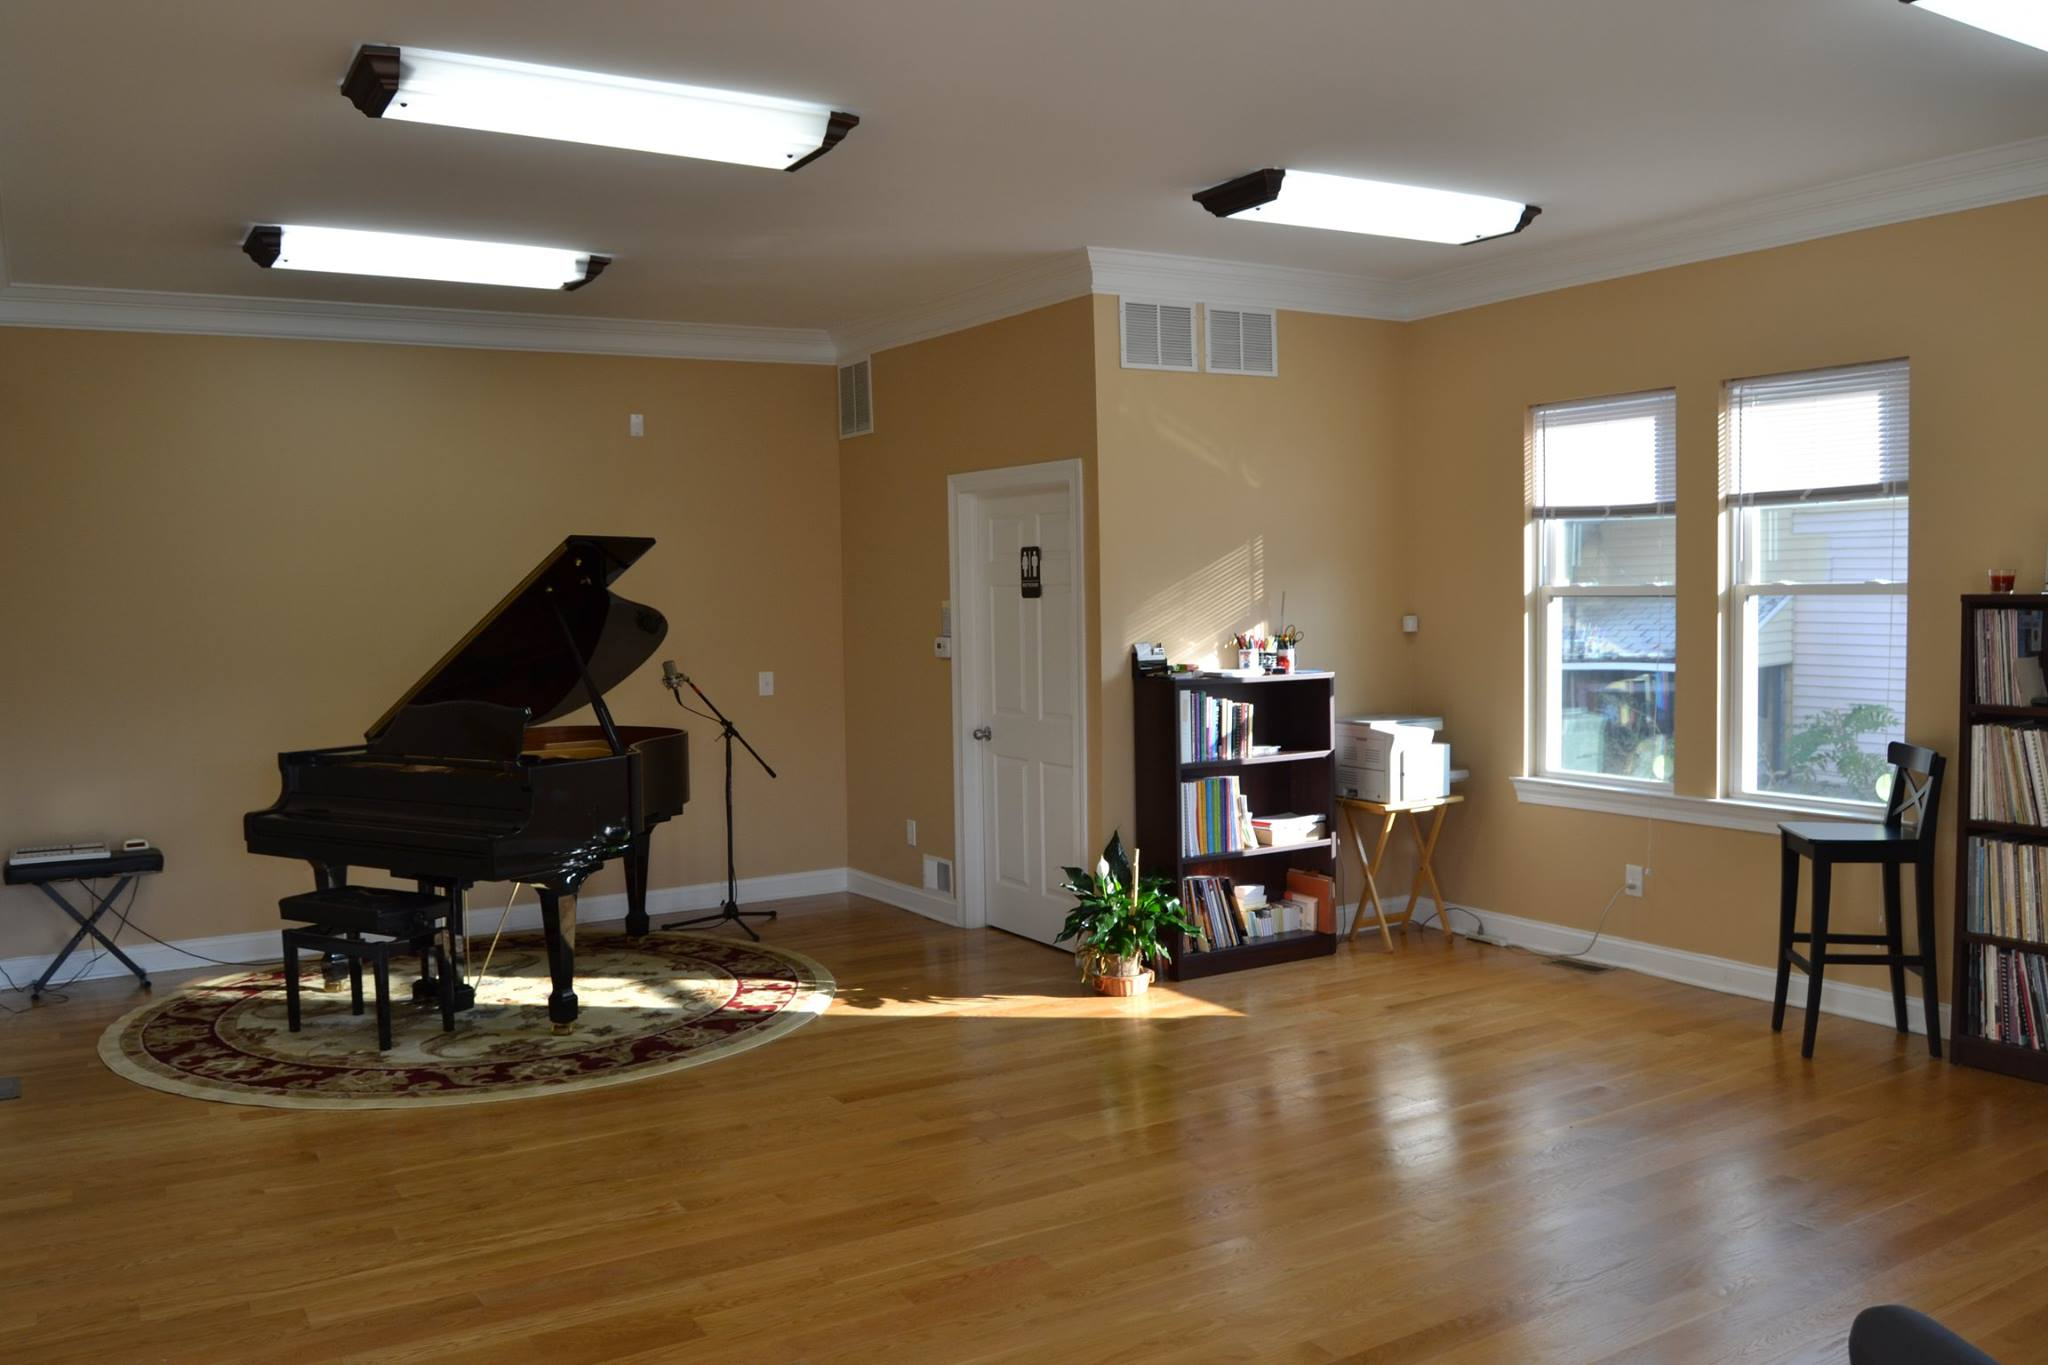 Inside the Piano Studio